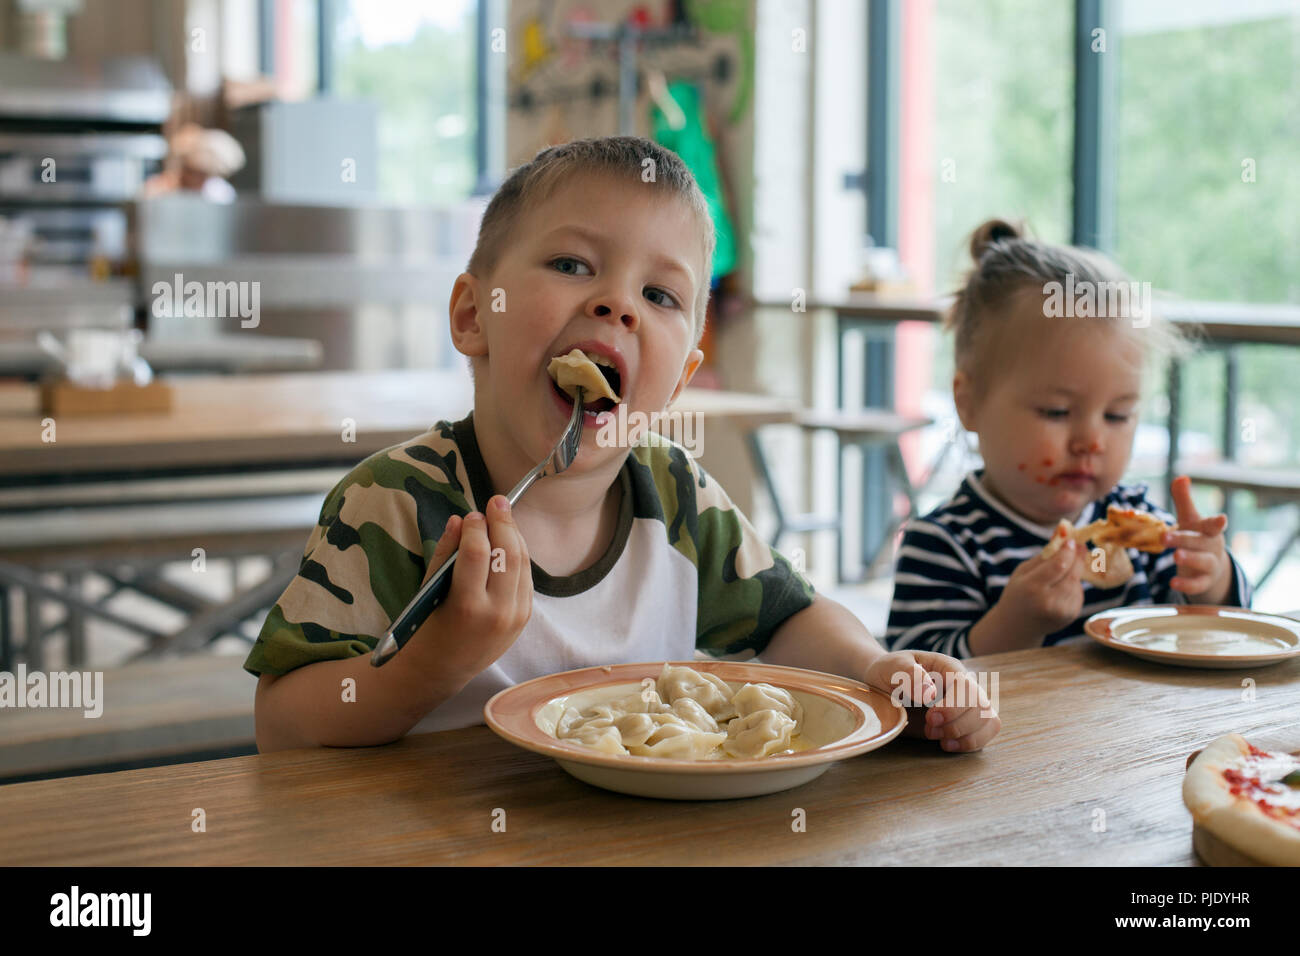 kids eat pizza and meat dumplings at cafe. children eating unhealthy food indoors. Siblings in the cafe, family holiday concept. Stock Photo